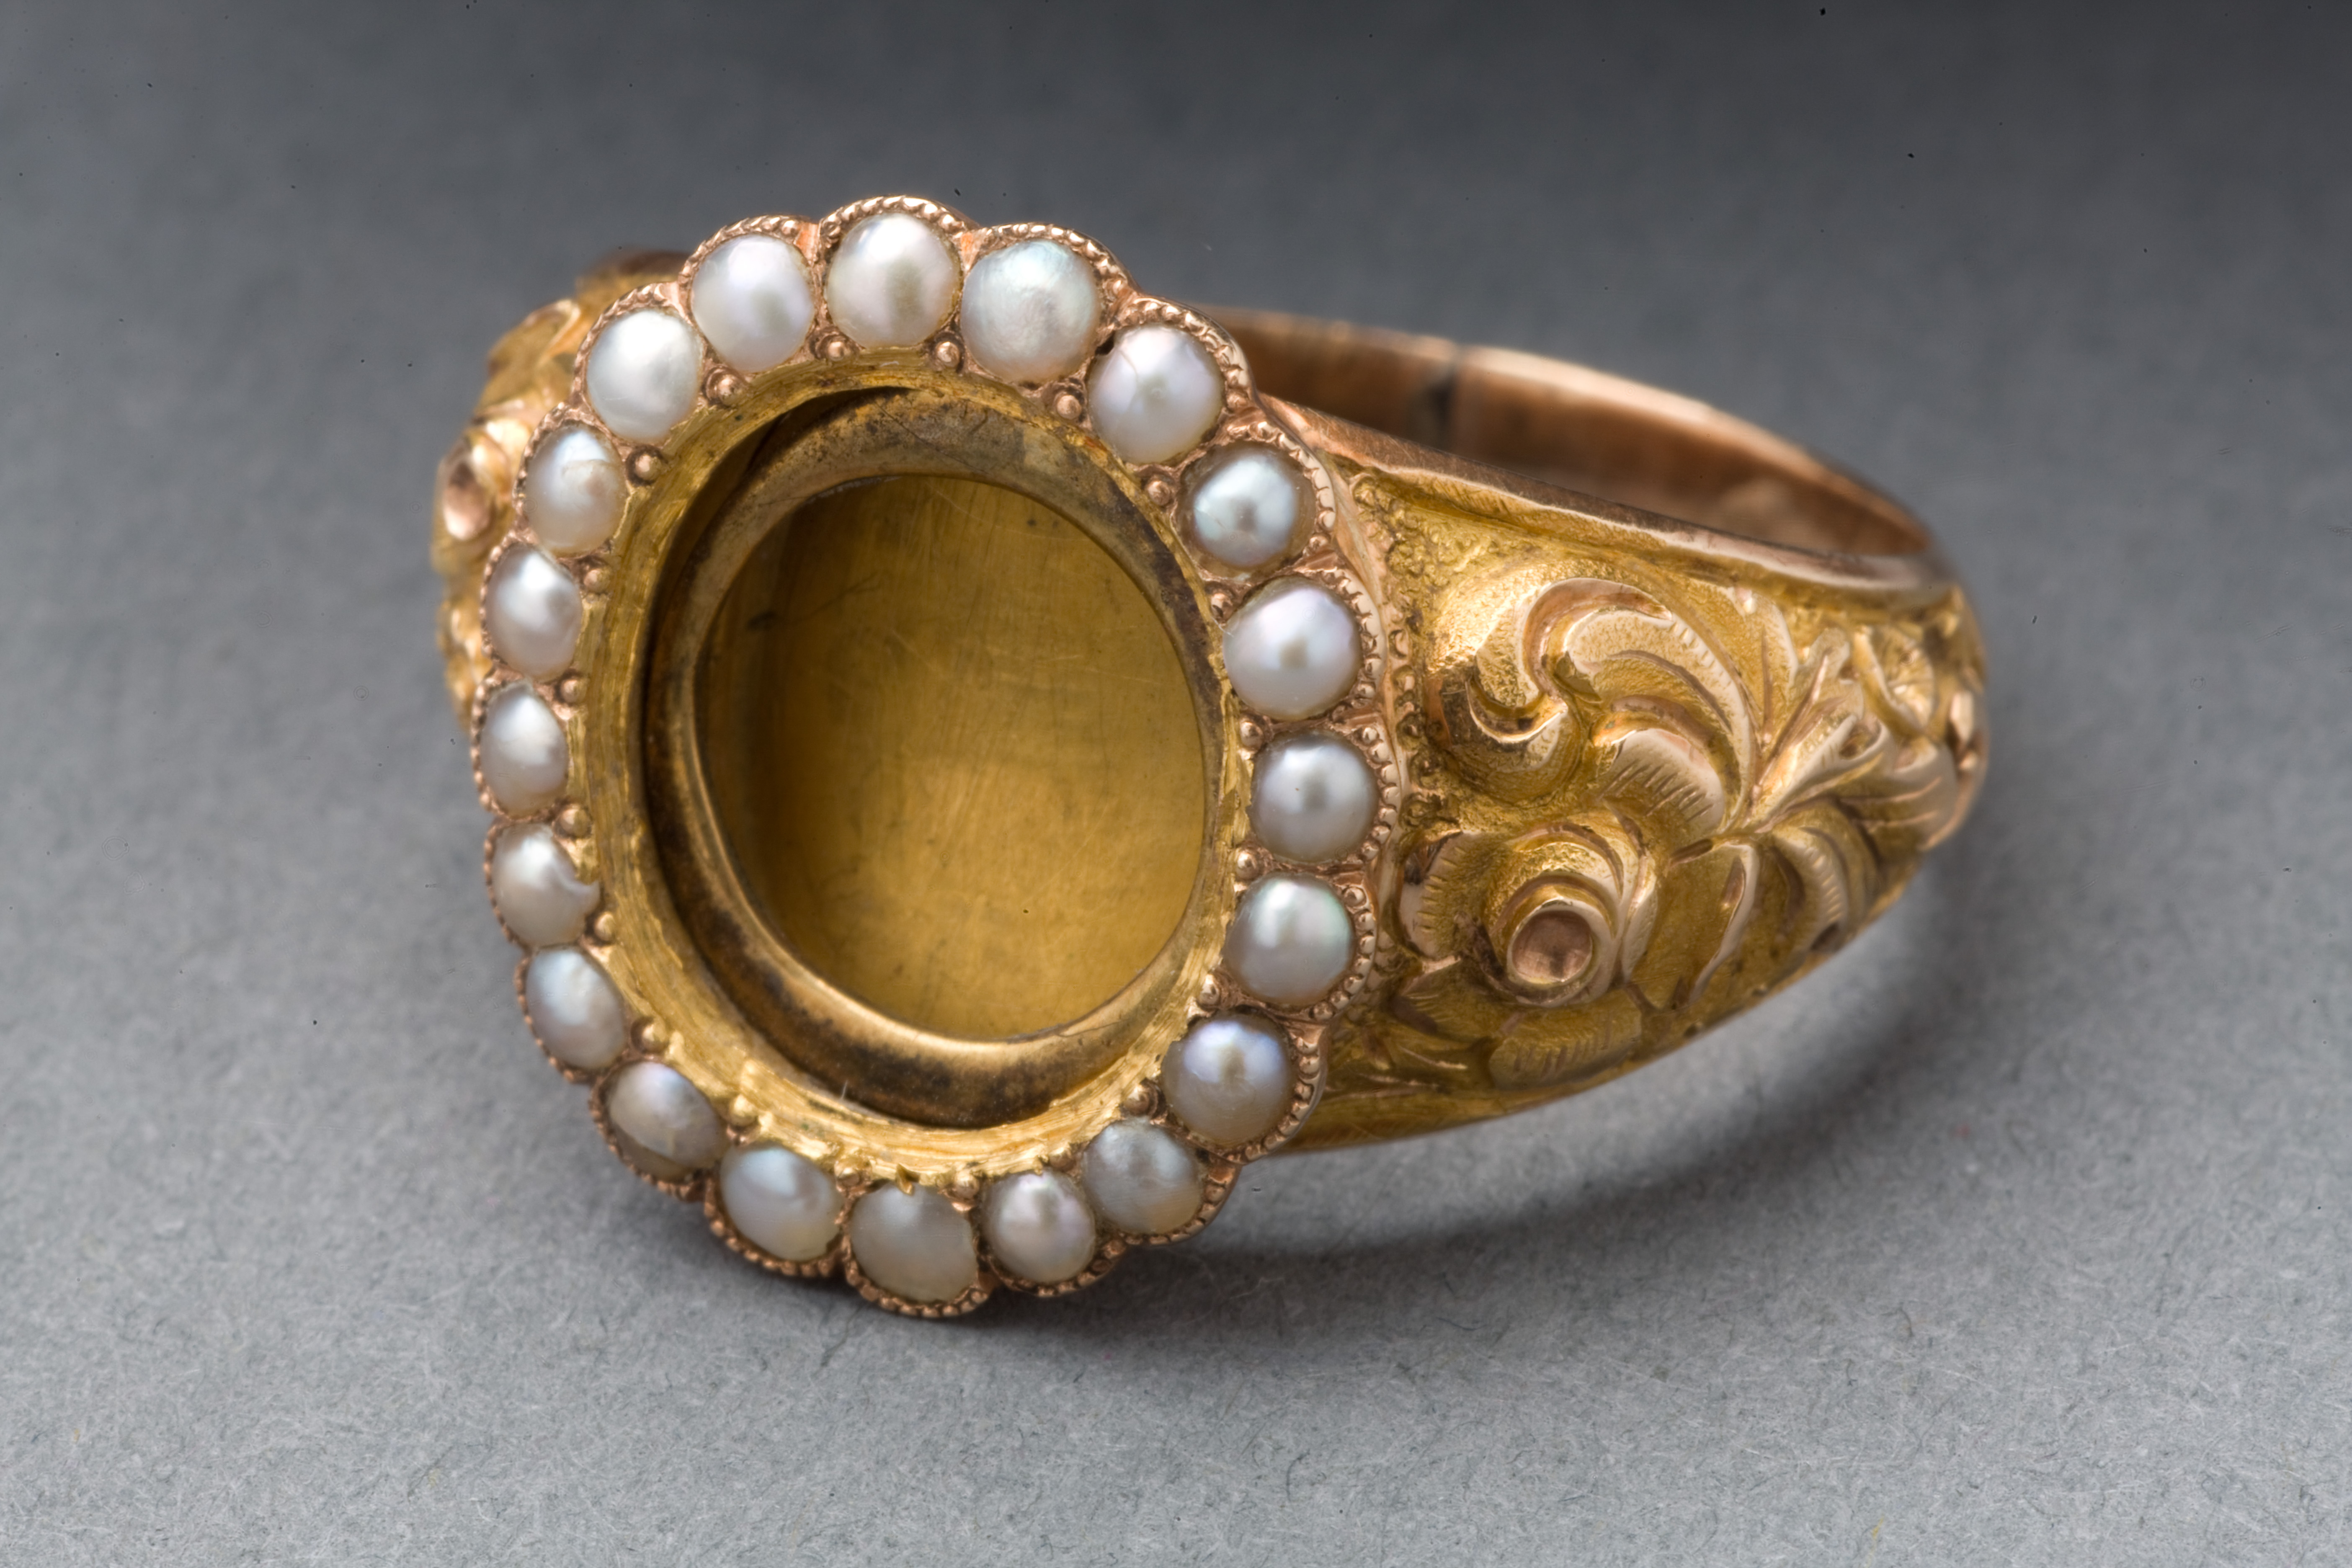 Ring owned by Tadeusz Kosciuszko, 18th century